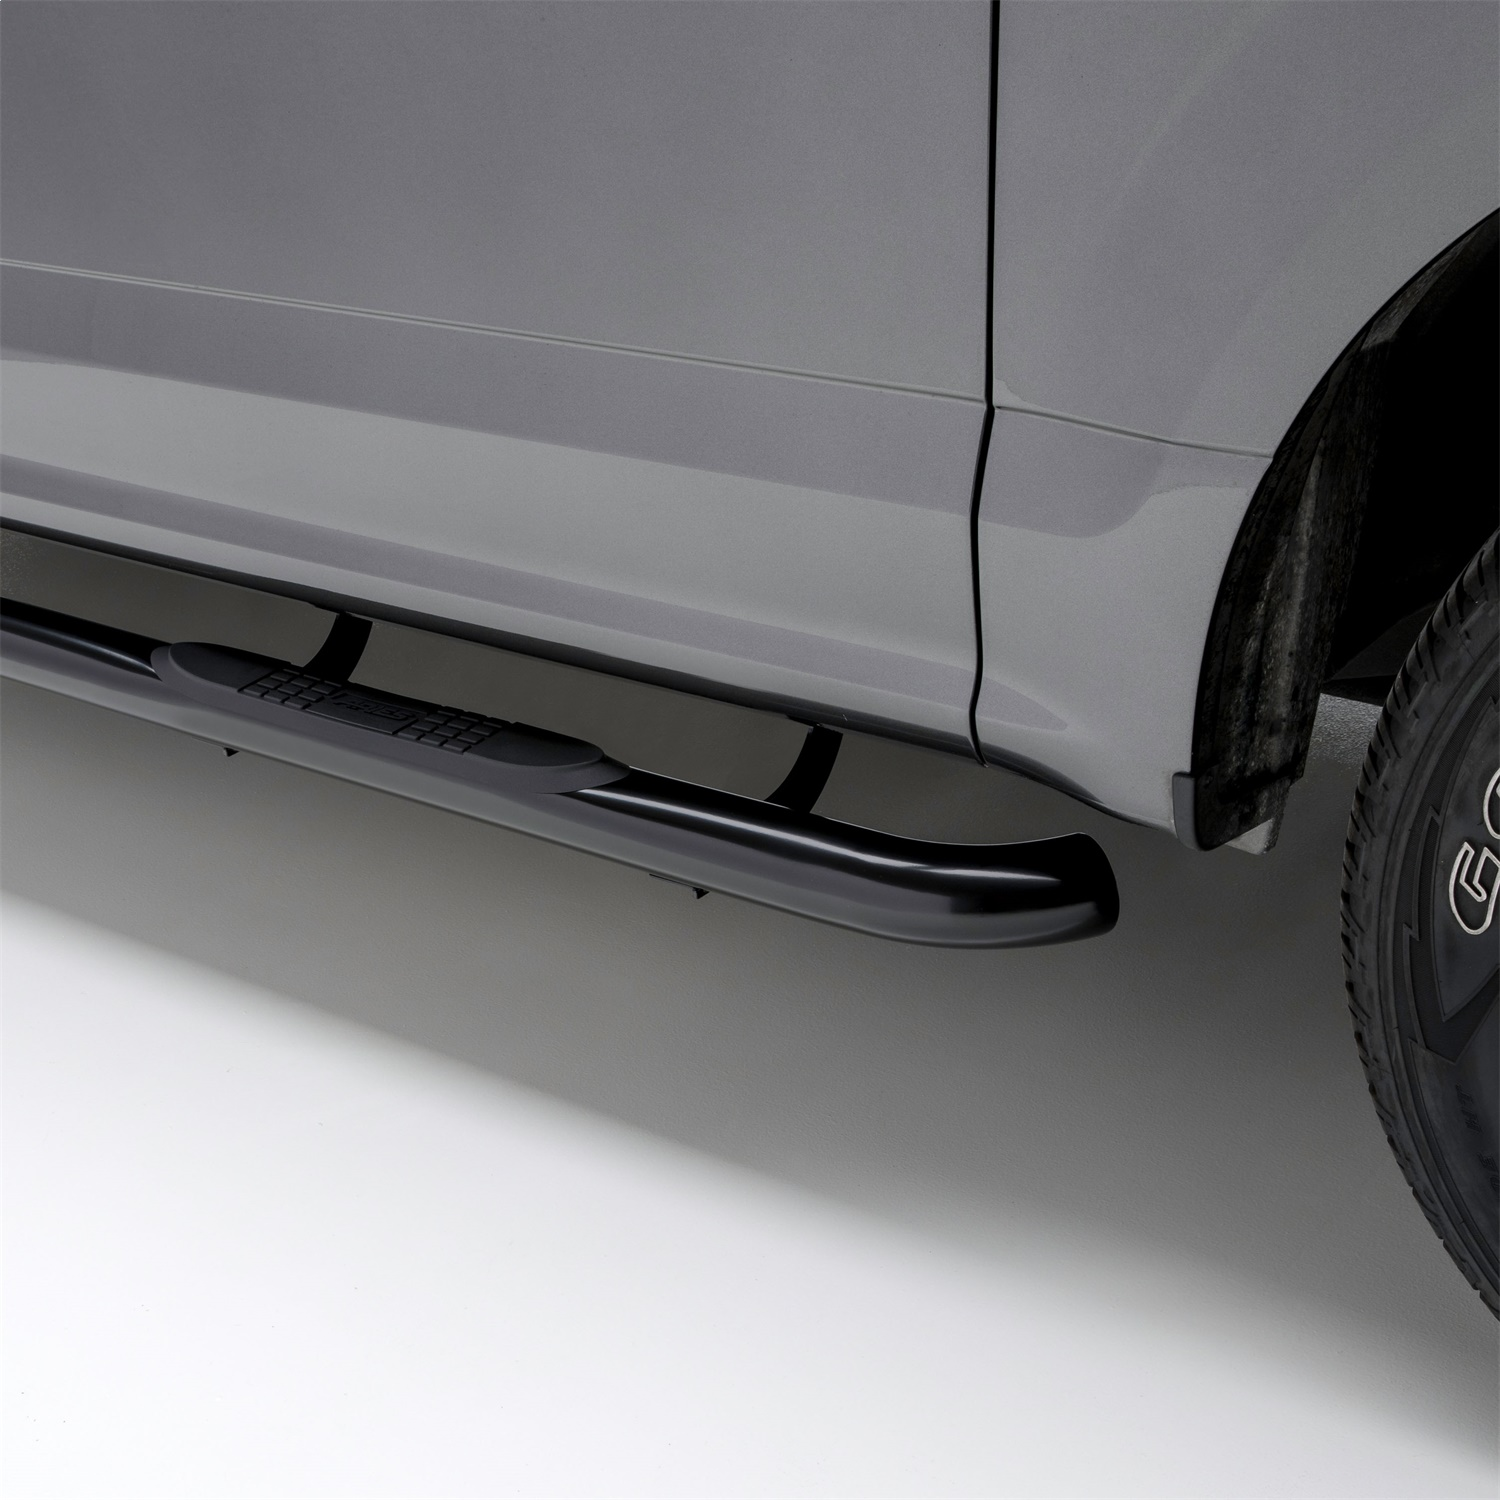 Aries 3 in. Round Side Bars, Incl. Side Bars And Mounting Hardware, Carbon Steel, Semi-Gloss Black